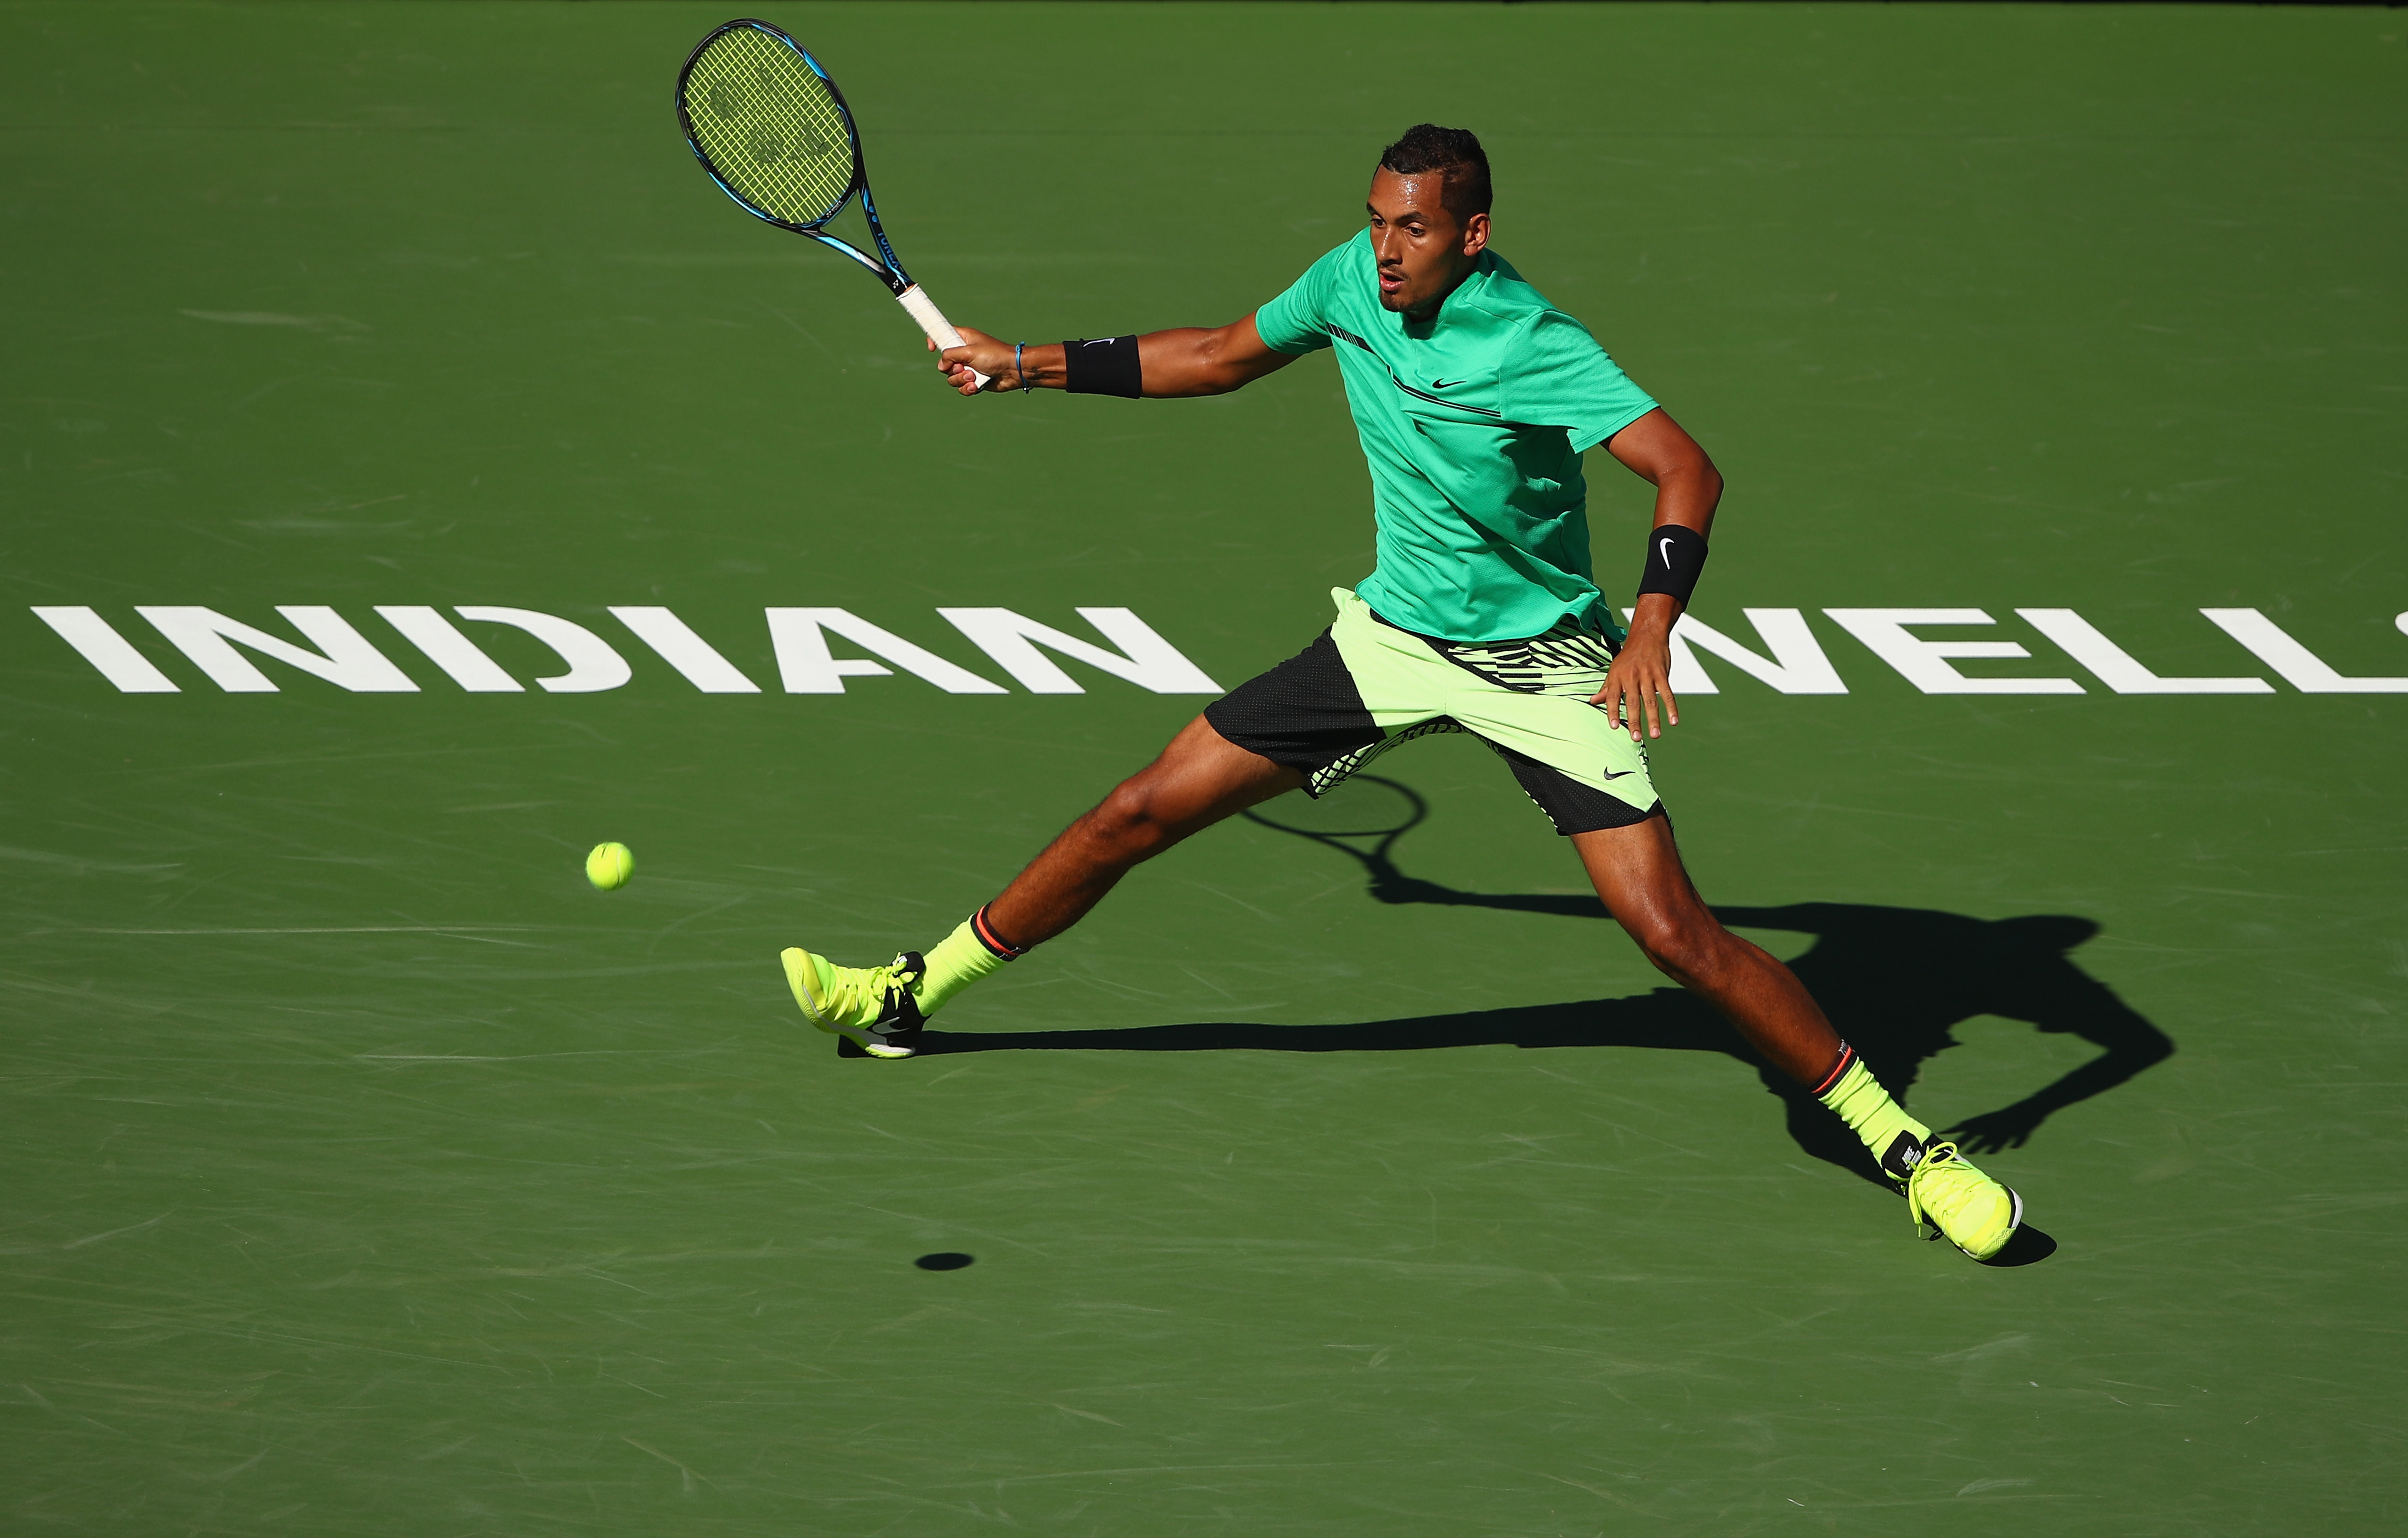 INDIAN WELLS, CA - MARCH 15: Nick Kyrgios of Australia plays a forehand during his straight set victory against Novak Djokovic of Serbia in their fourth round match during day ten of the BNP Paribas Open at Indian Wells Tennis Garden on March 15, 2017 in Indian Wells, California. (Photo by Clive Brunskill/Getty Images)